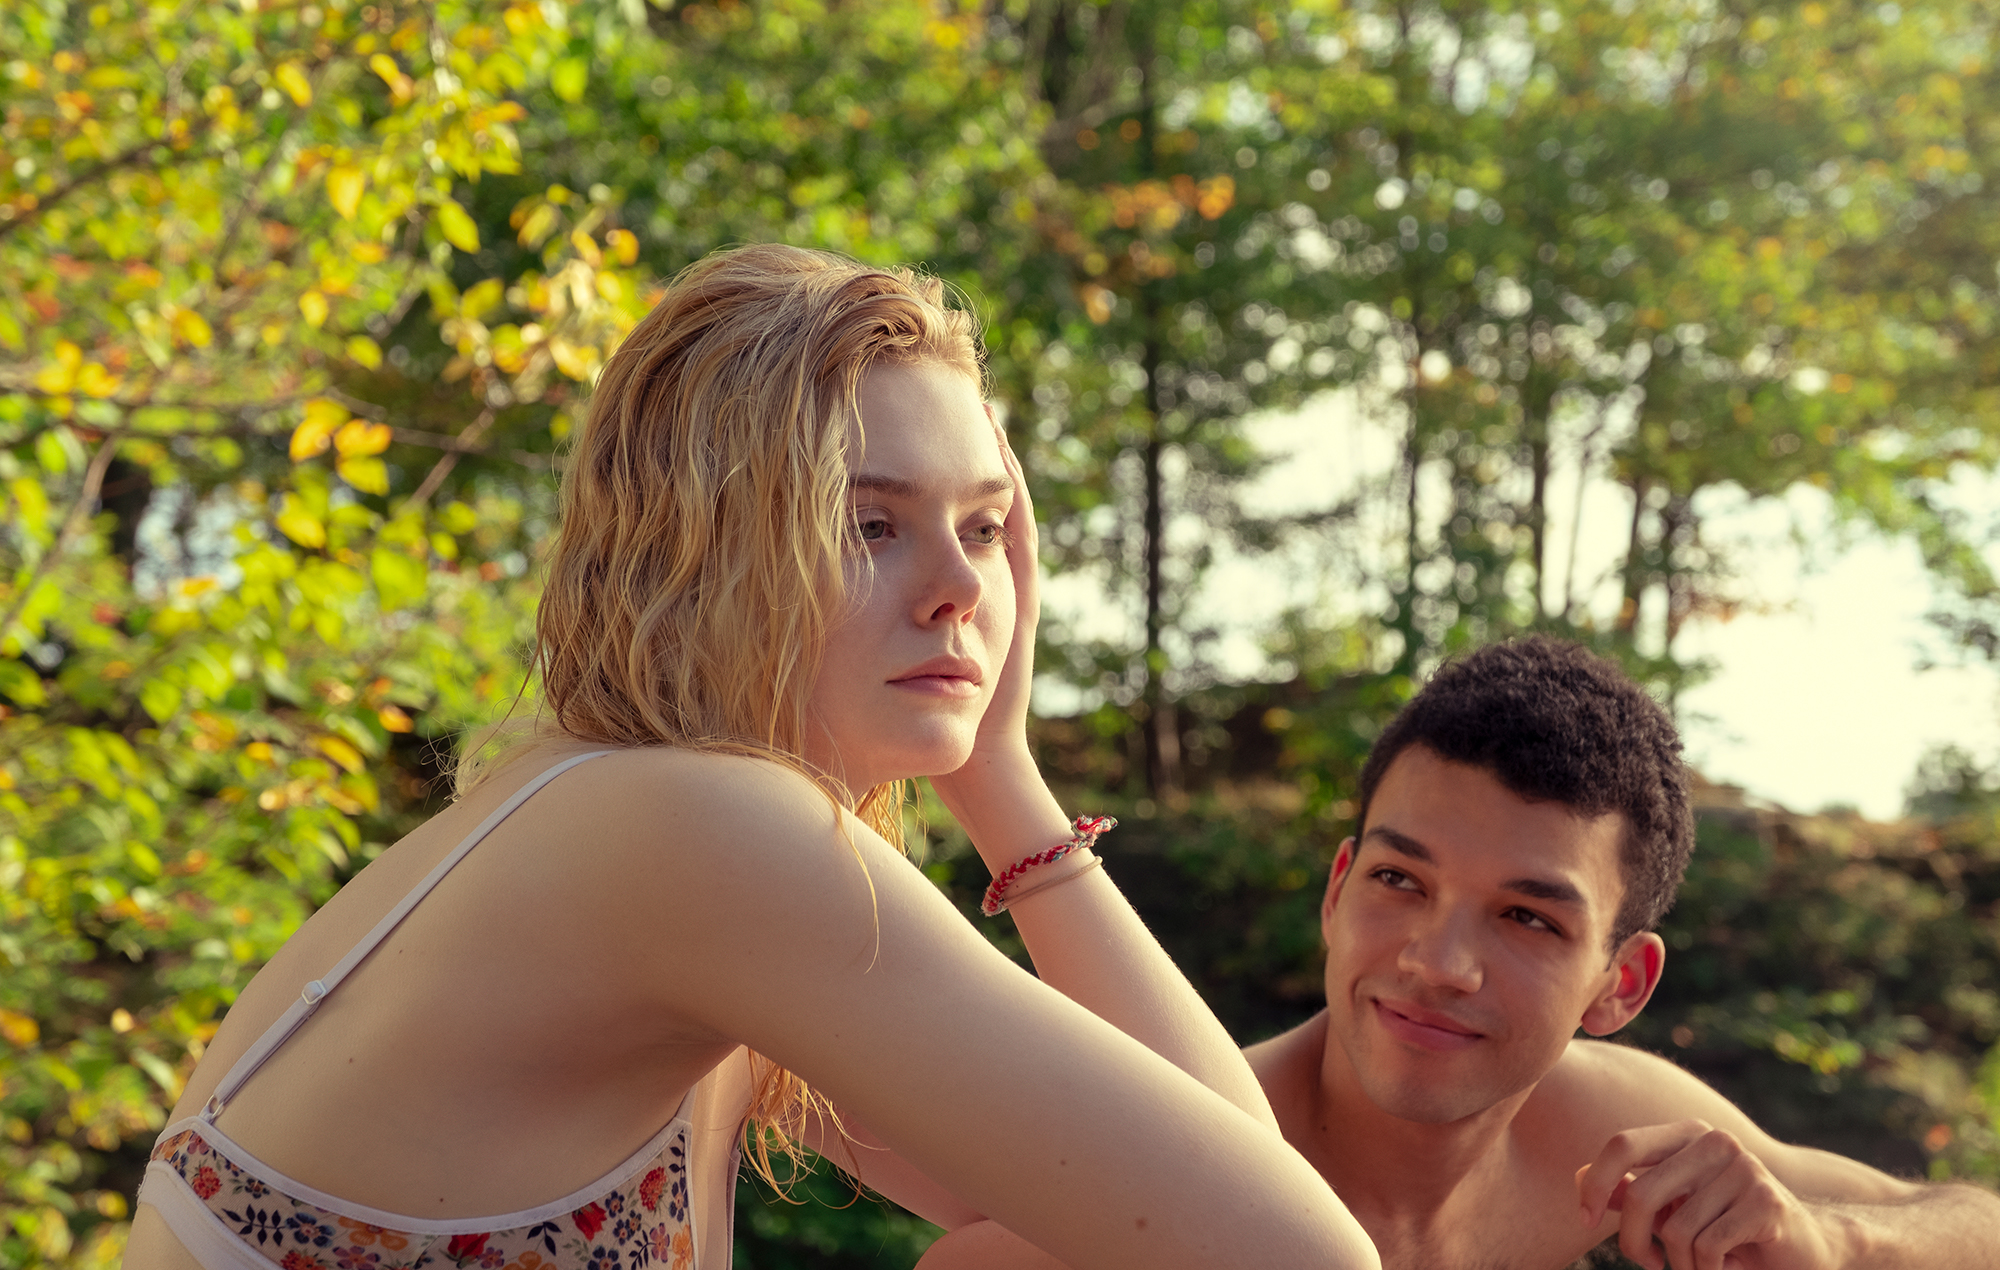 All The Bright Places' review: a rare rose among the thorns